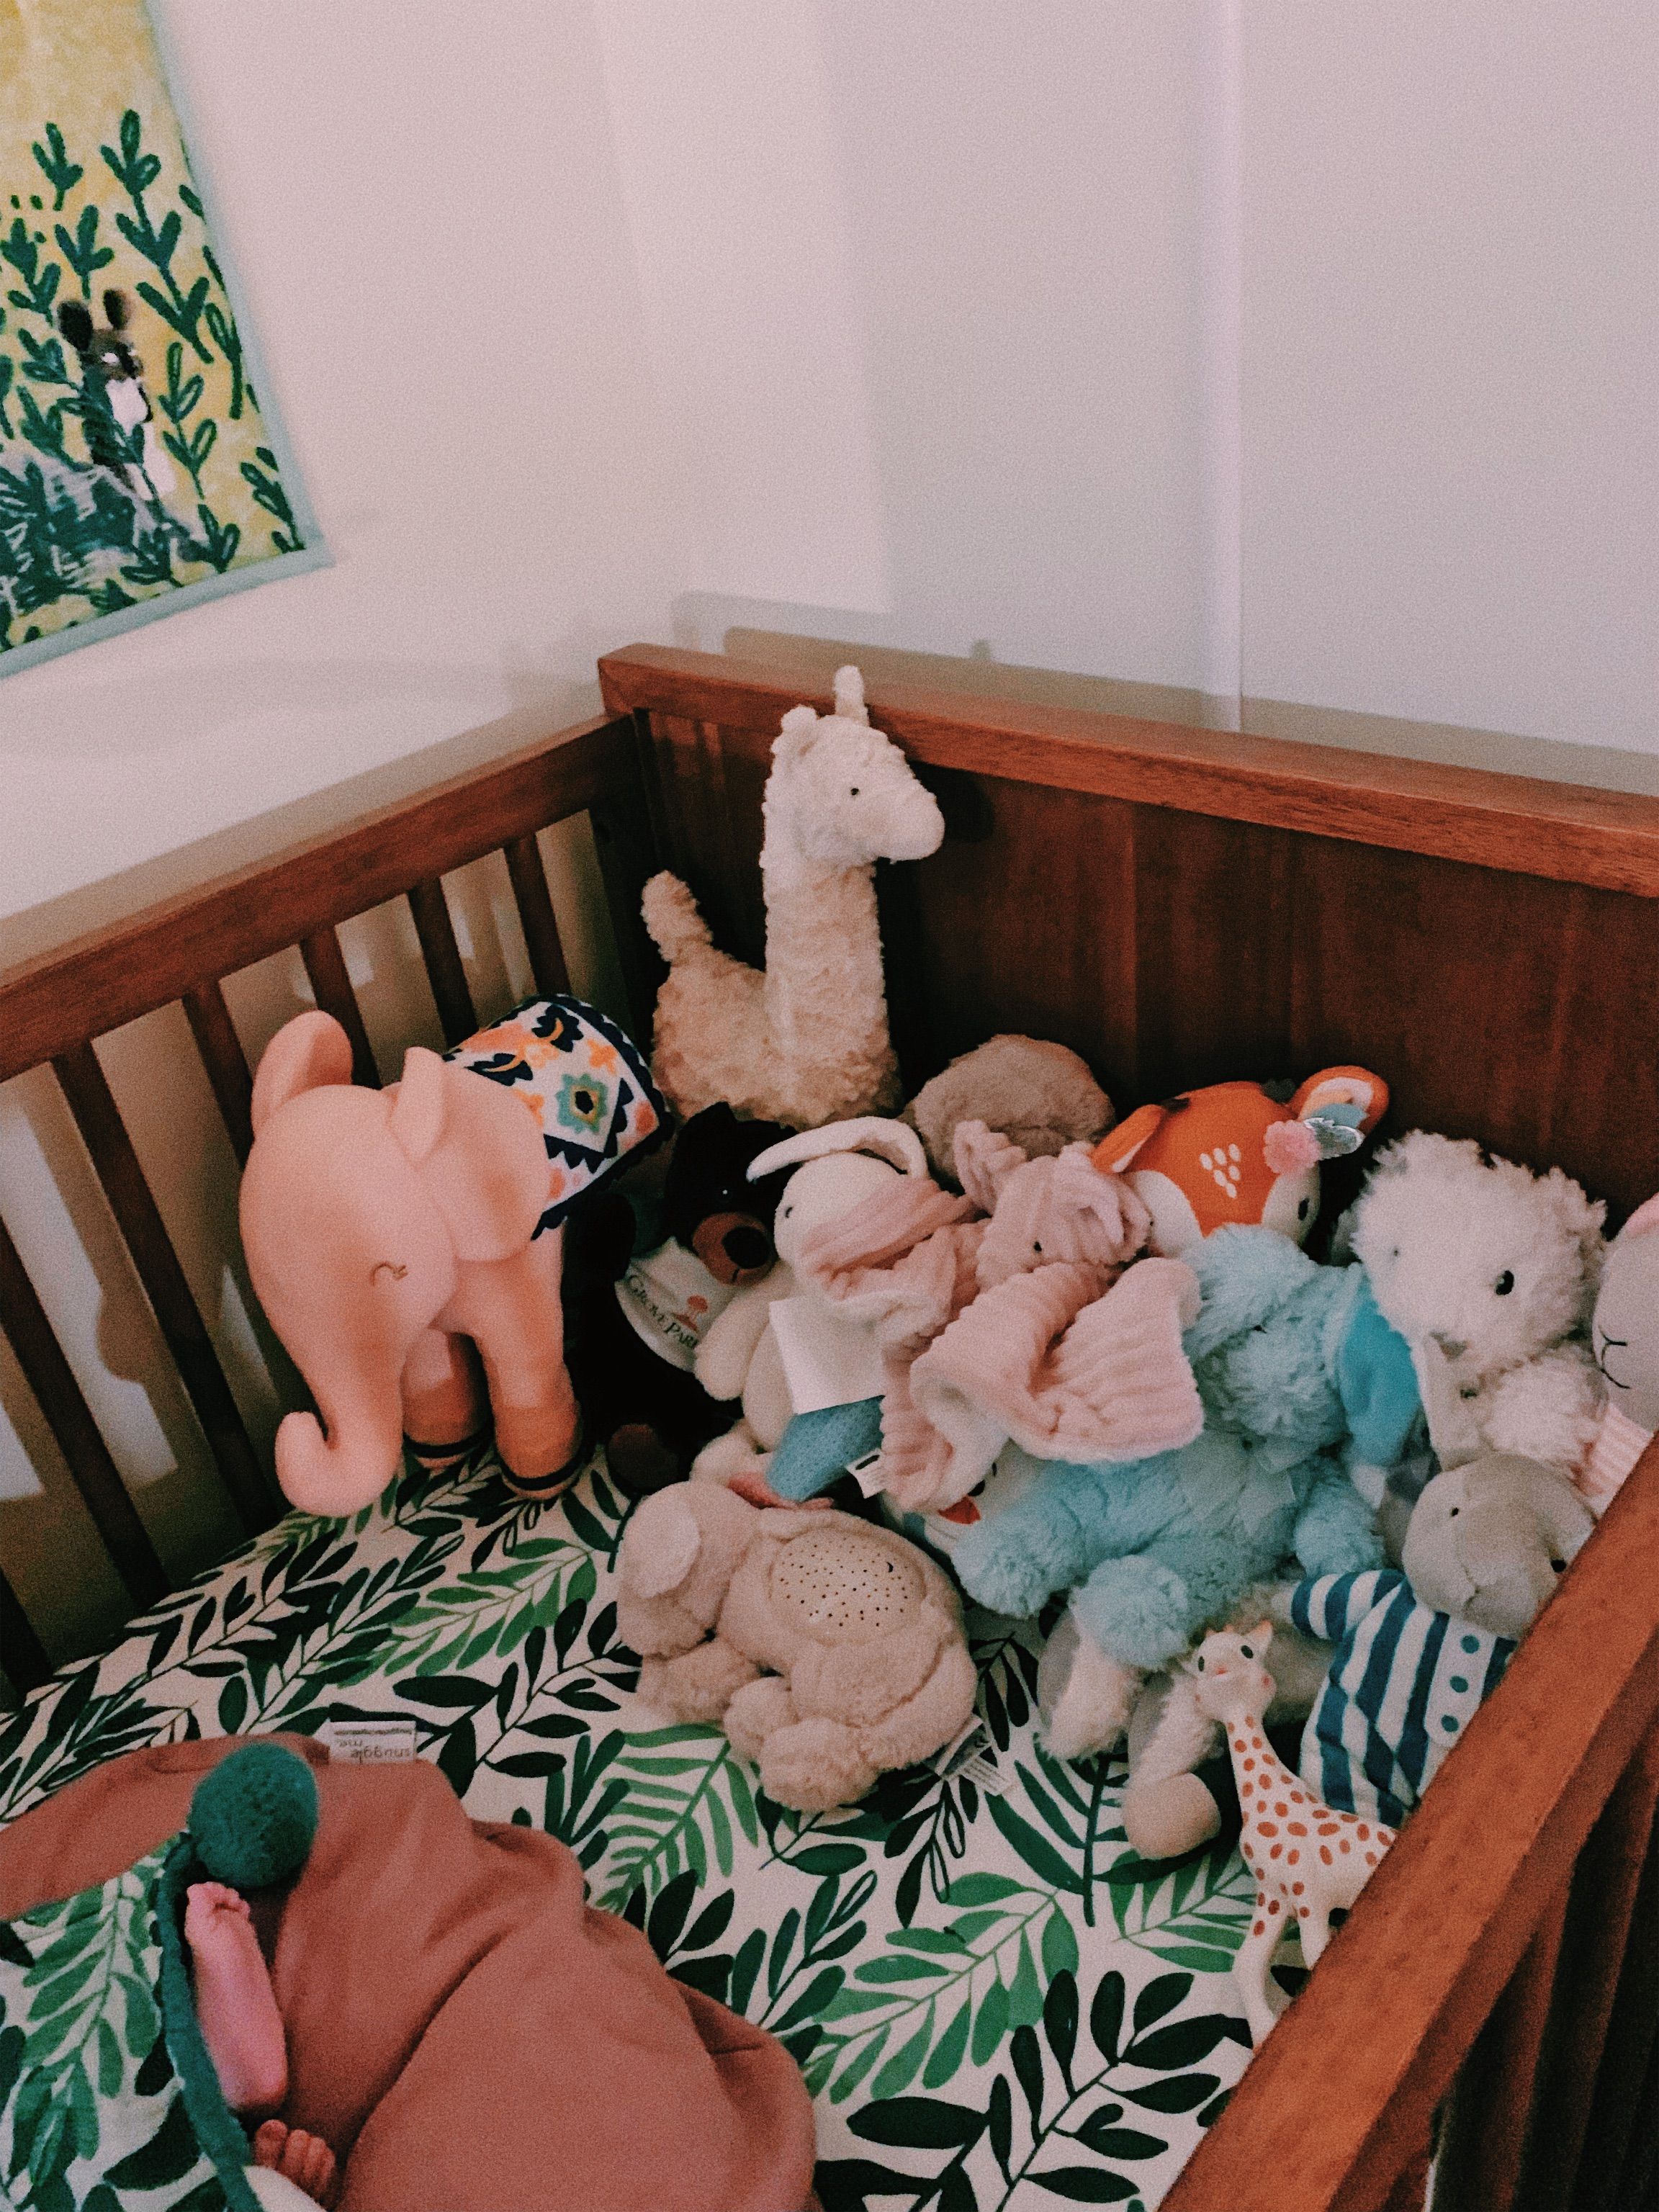 We also have so many cuddly buddies that will live on the daybed whenever she actually sleeps in the crib at night.